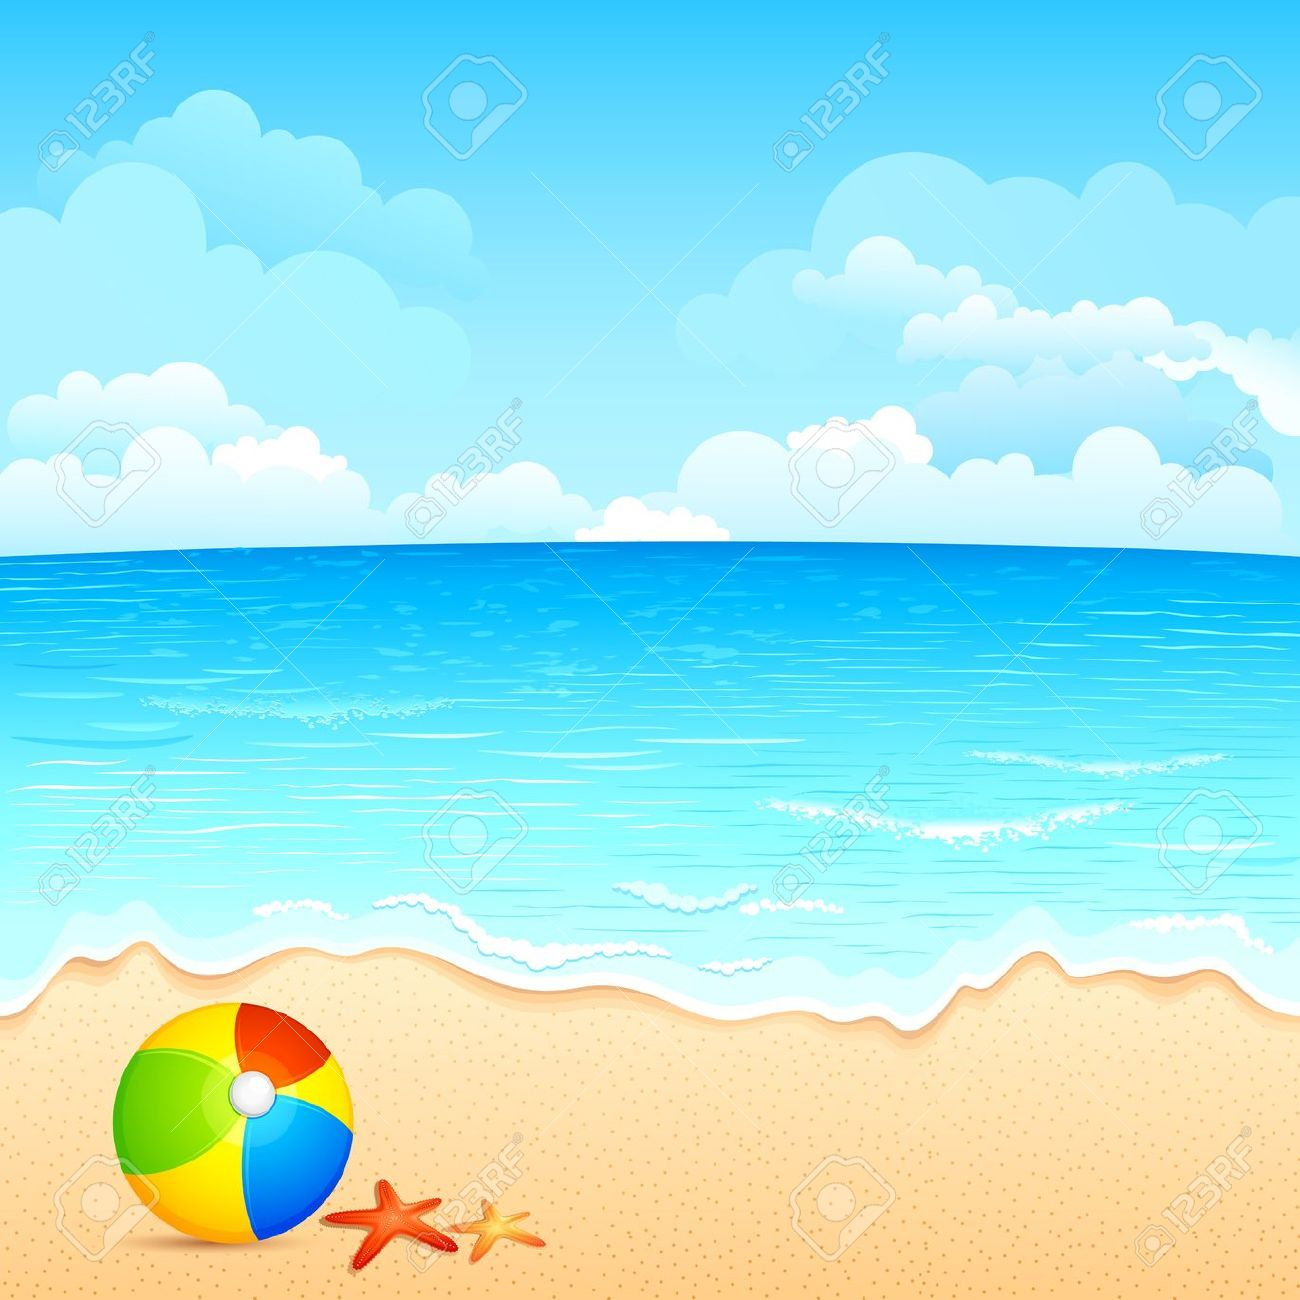 The Sea clipart beach background Download Shore clipart drawings Shore